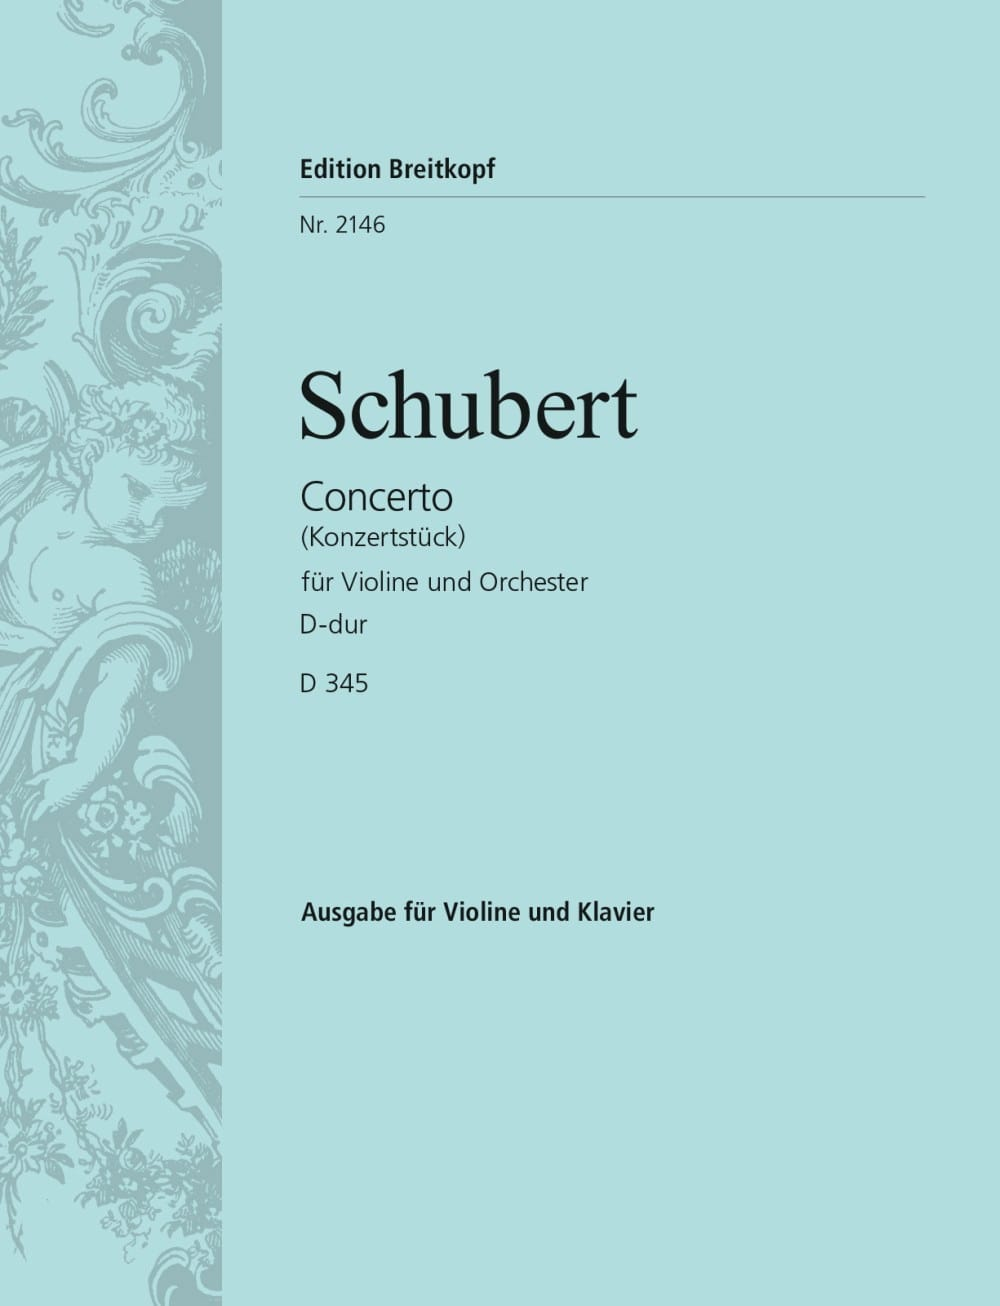 SCHUBERT - Concerto Konzertstück in D major - D 345 - Partition - di-arezzo.co.uk